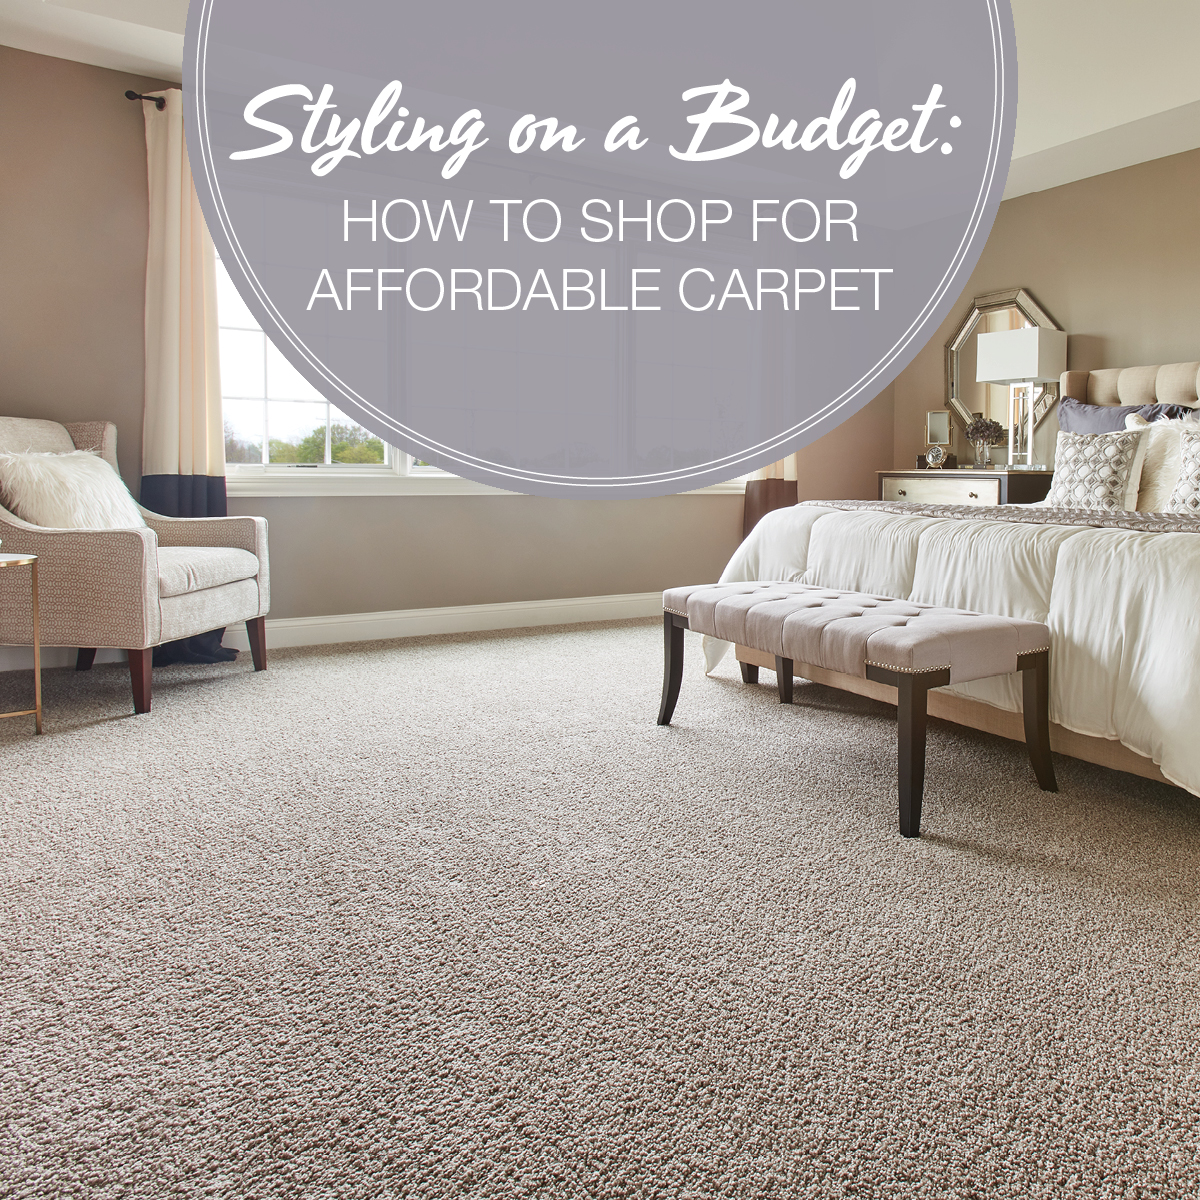 how to shop for affordable carpet